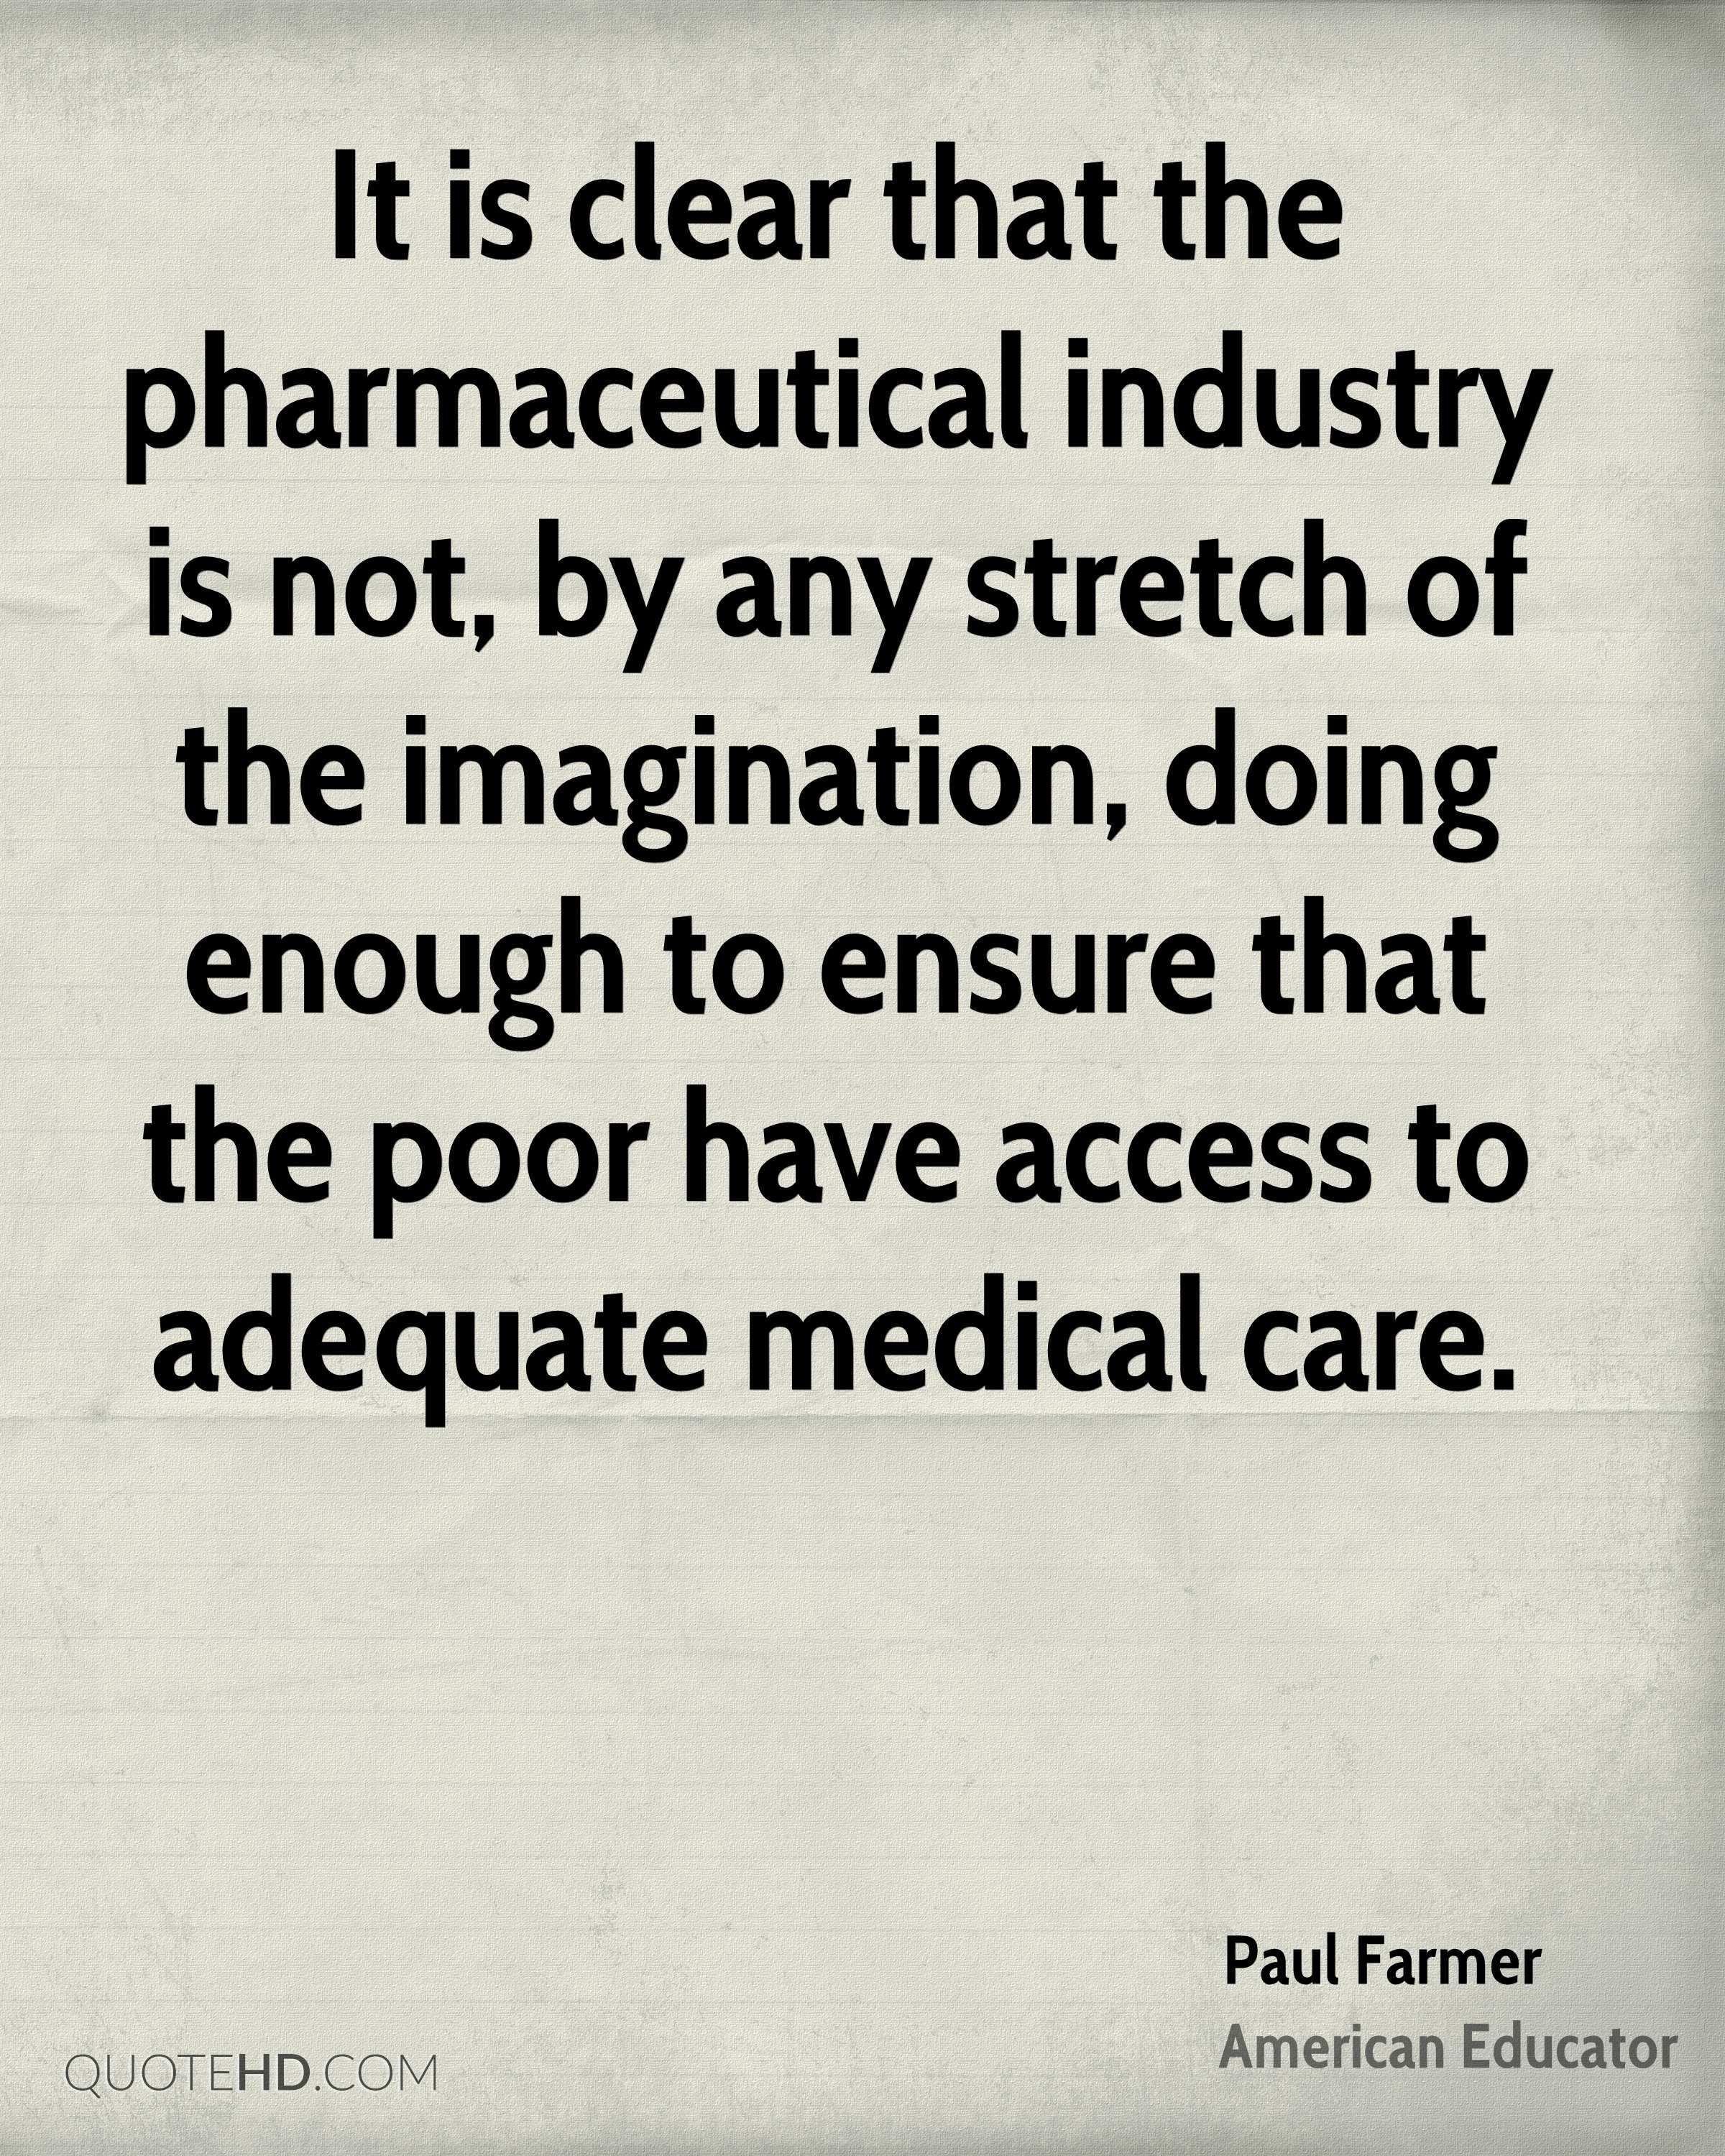 It is clear that the pharmaceutical industry is not, by any stretch of the imagination, doing enough to ensure that the poor have access to adequate medical care.